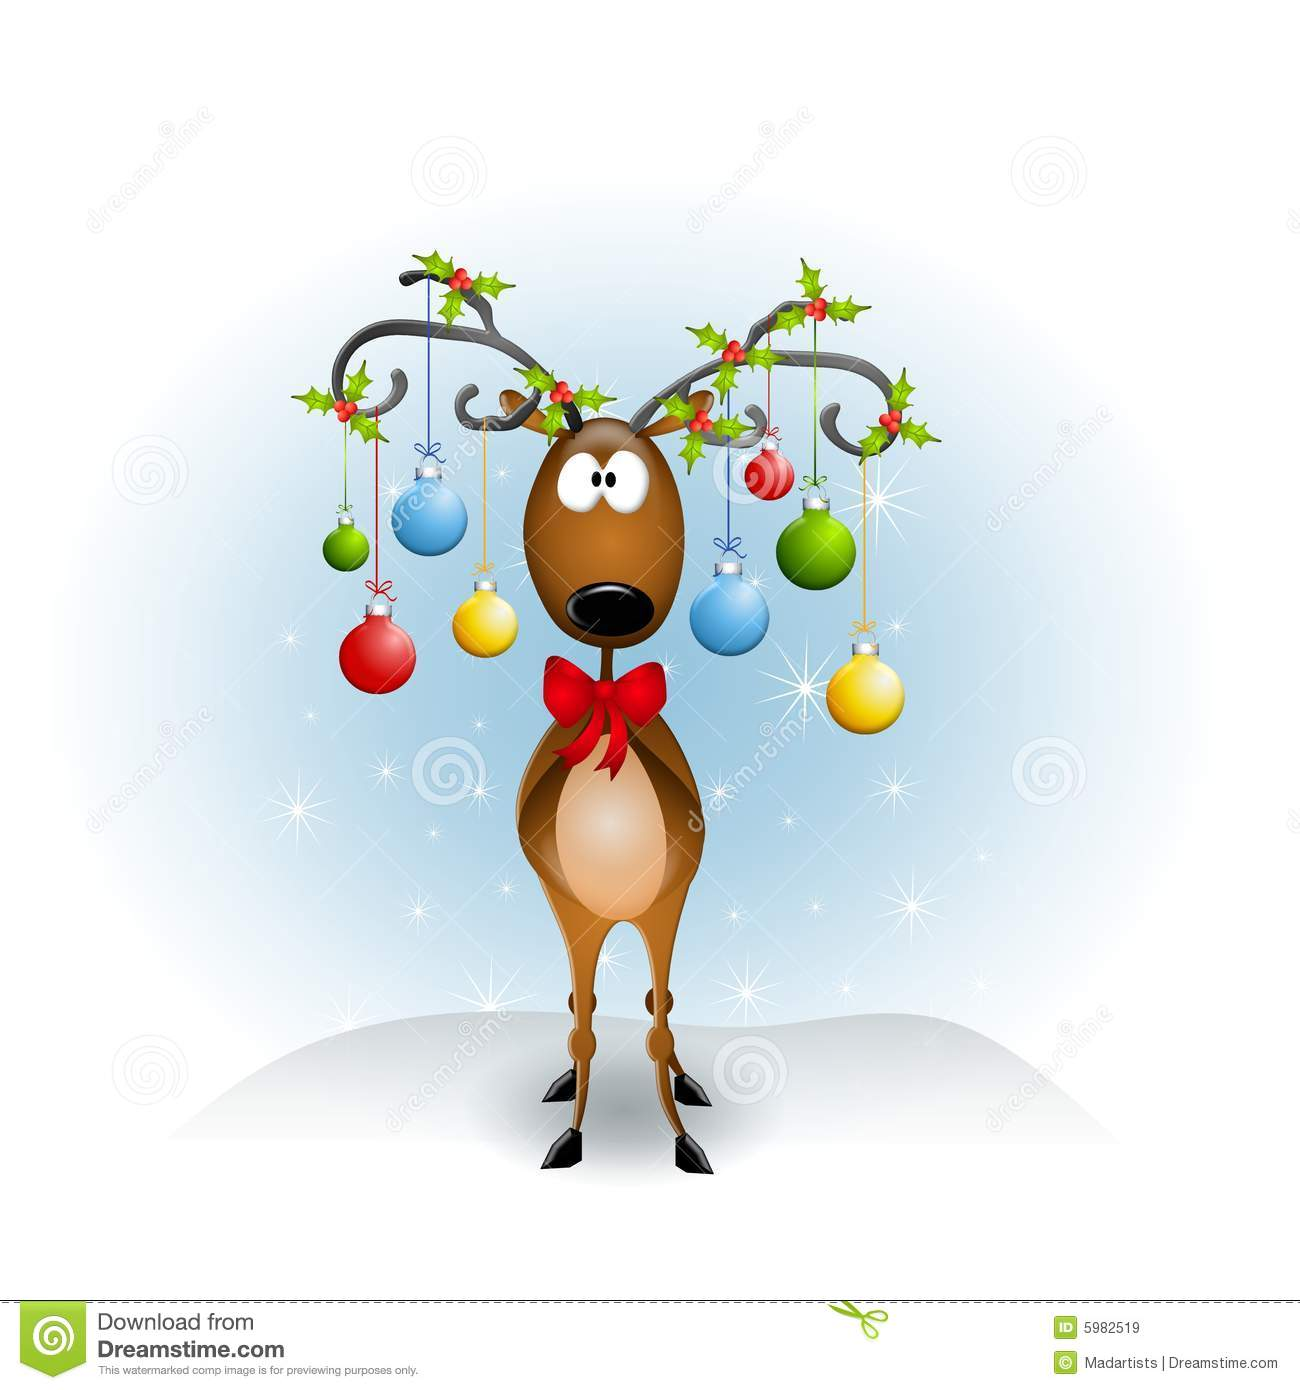 Clip Art Illustration Featuring A Reindeer With Antlers Decorated